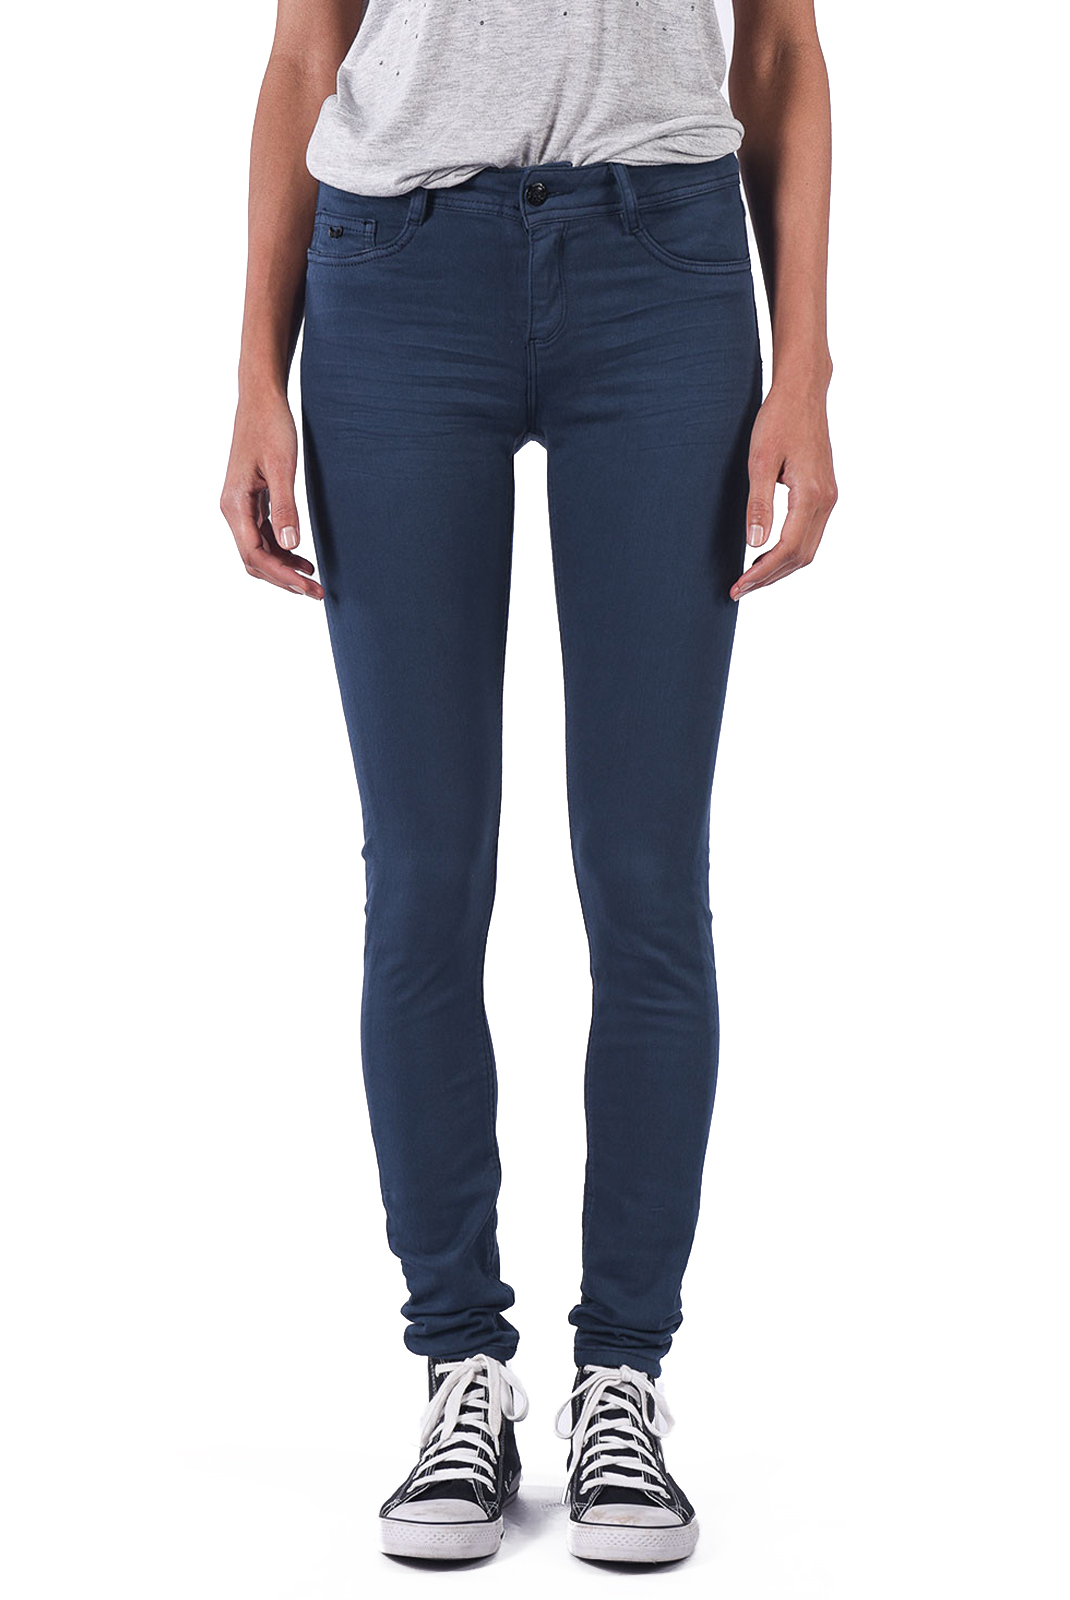 Jeans   Kaporal POWER H18W7 MARINE